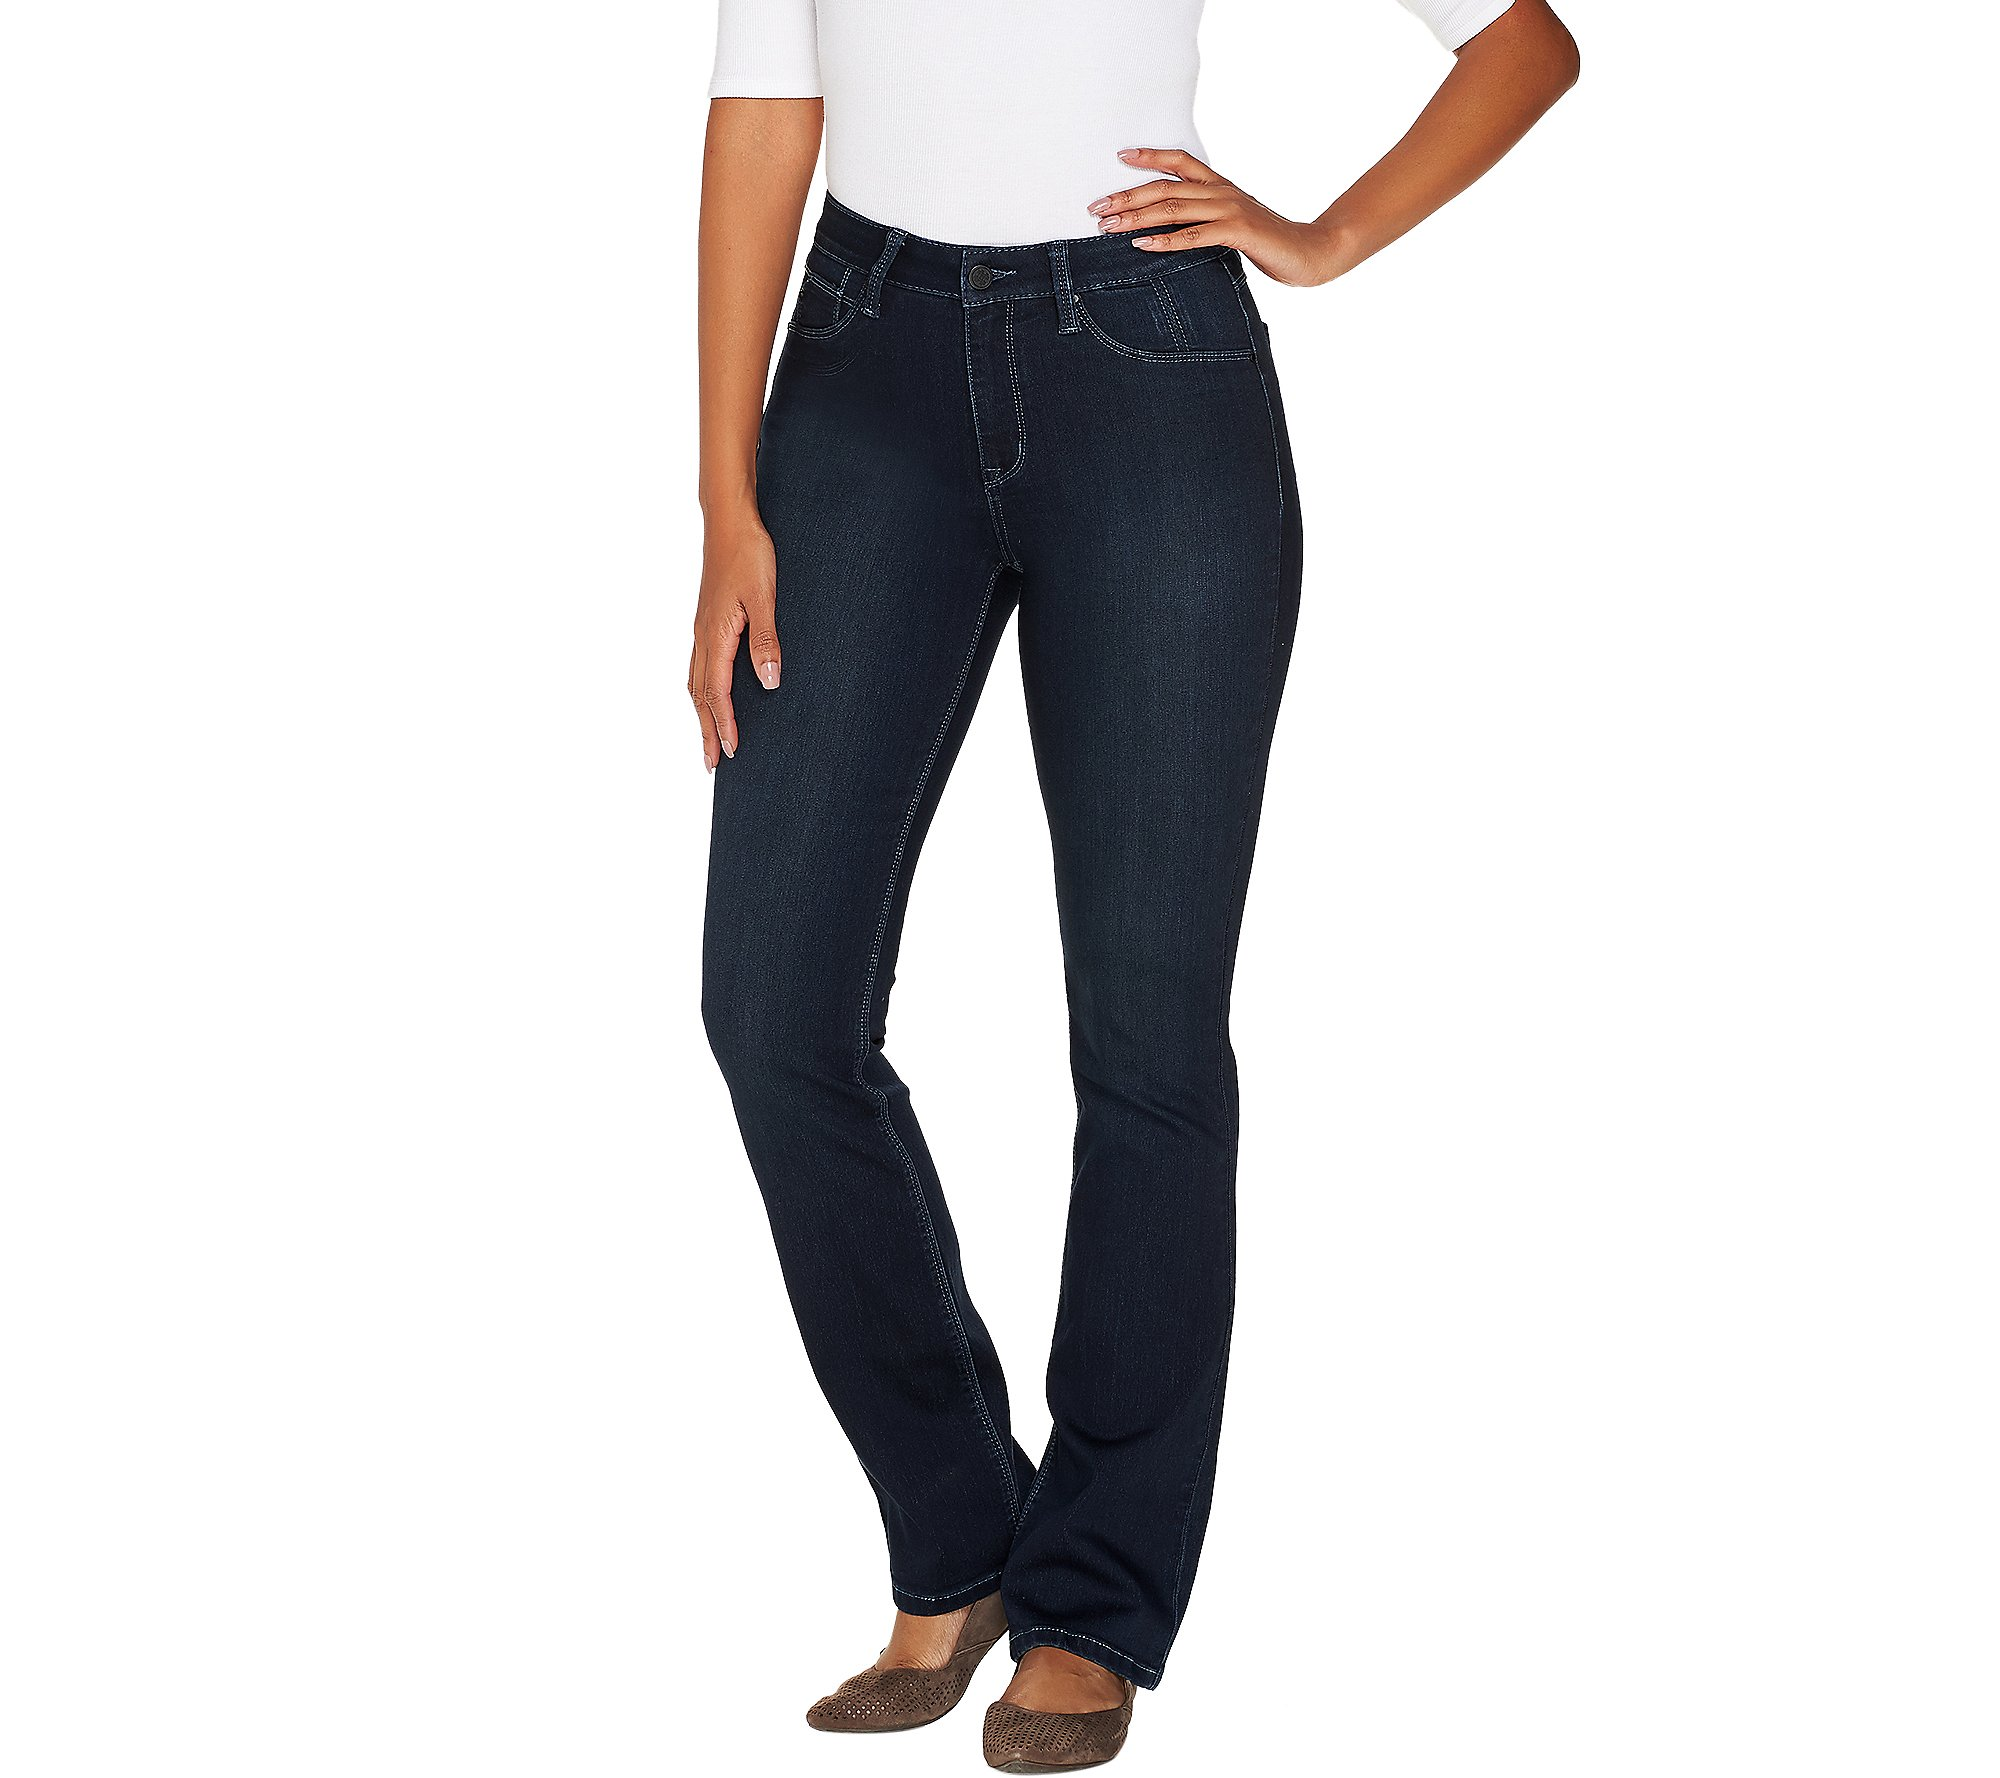 Laurie Felt Petite Silky Denim Baby Bell Jeans Fly Dark Wash PS NEW A301665